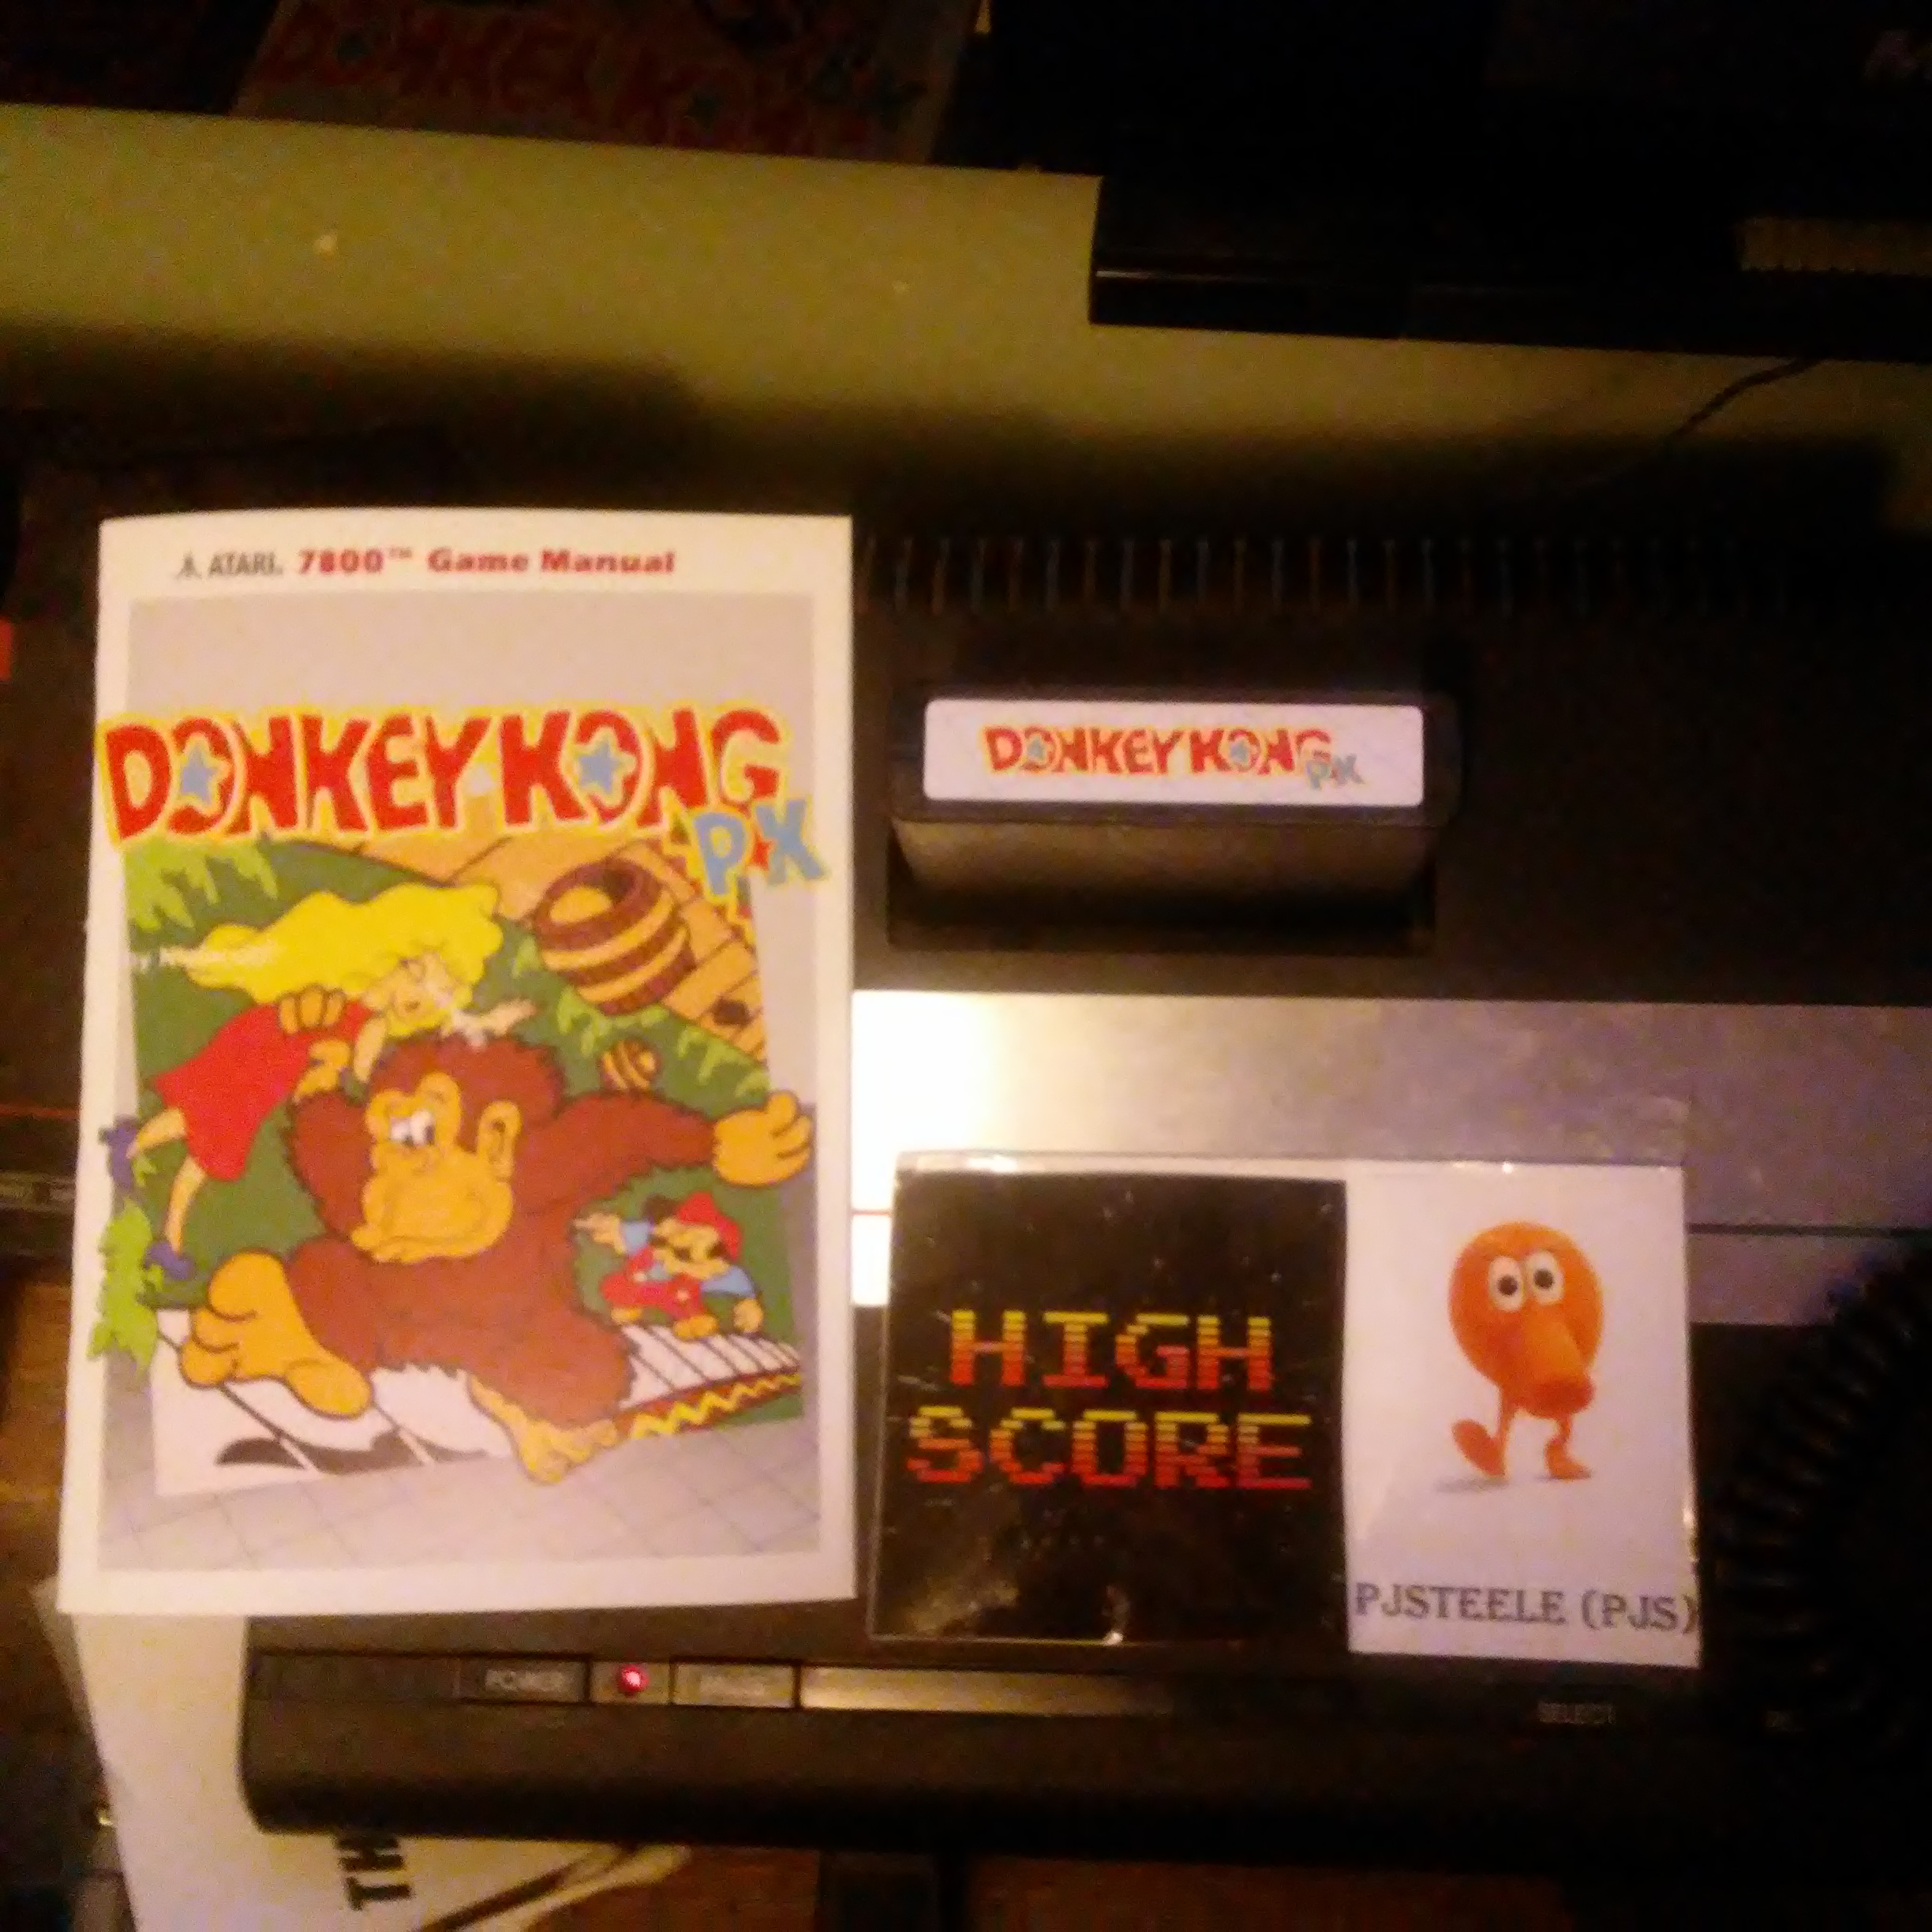 Donkey Kong PK [Start Level: One] [Screen Order: US] [Difficulty: Arcade] 100,400 points